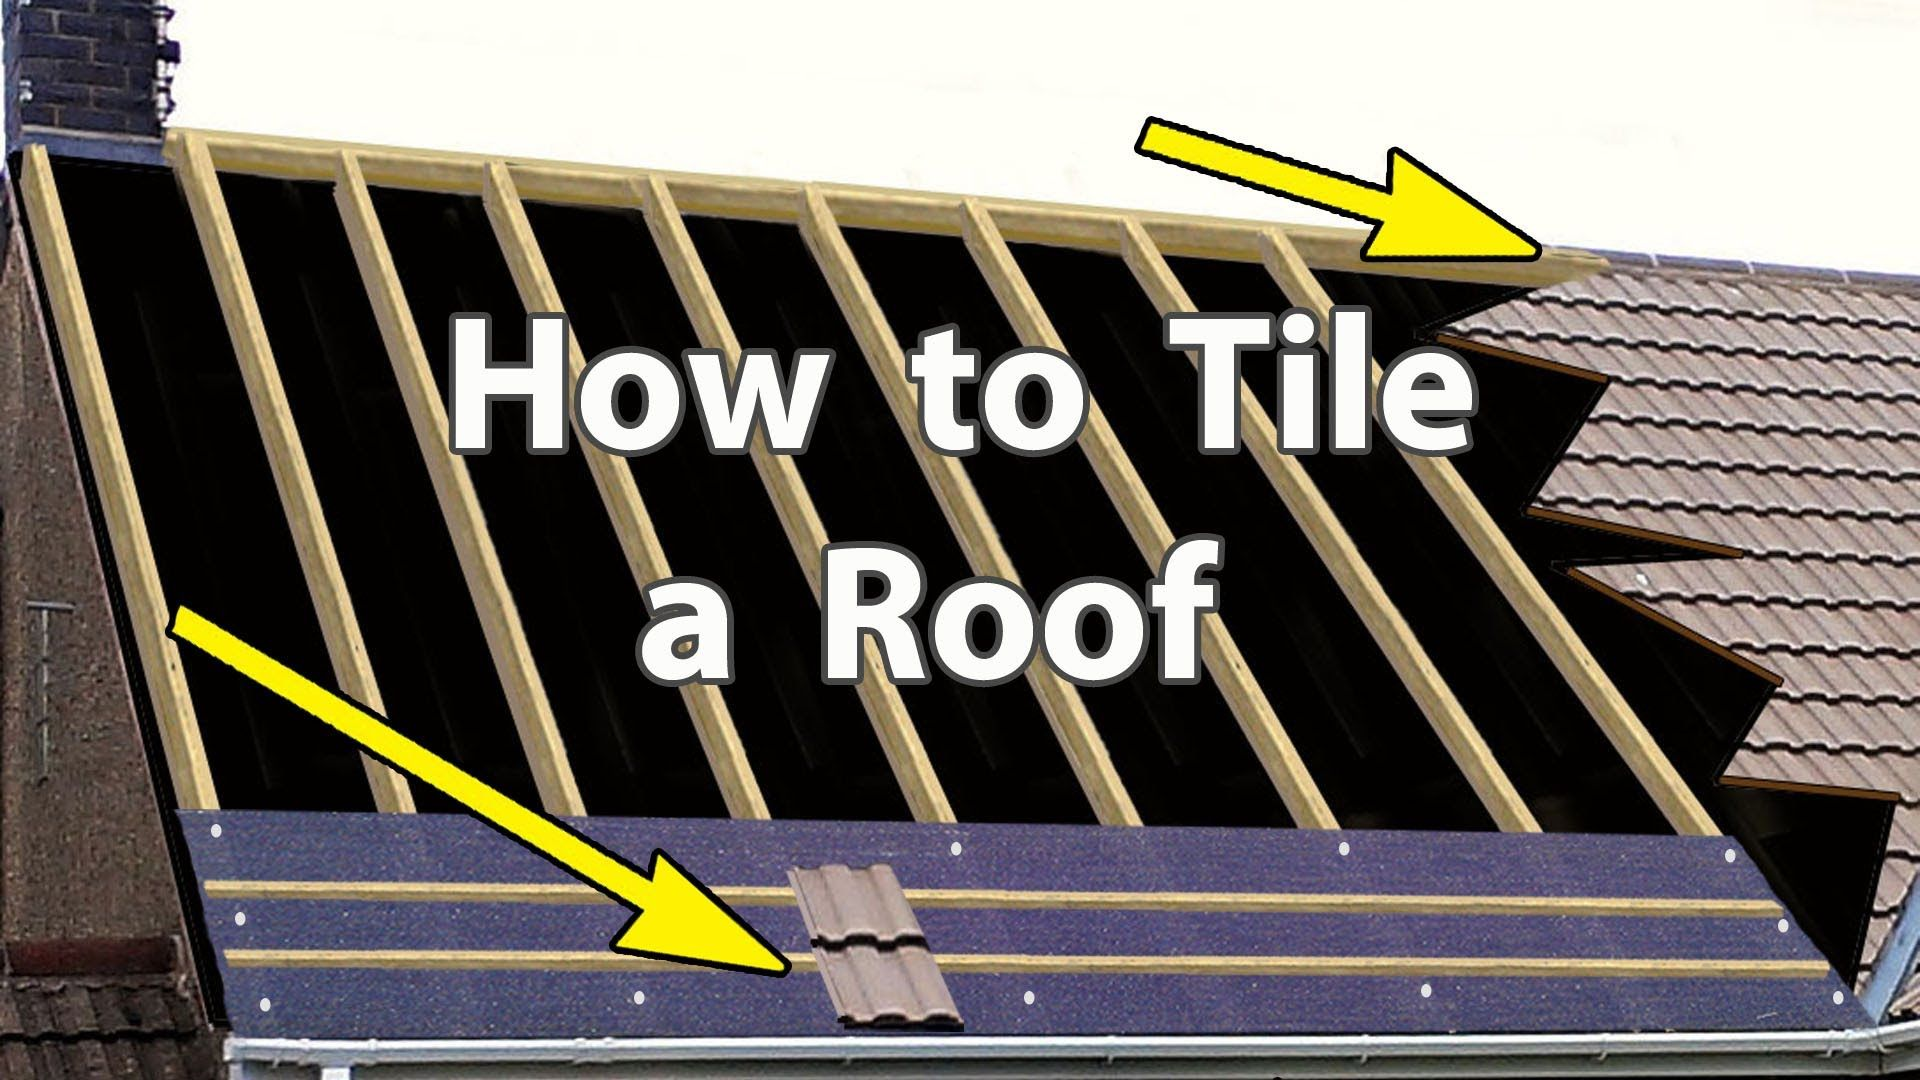 How To Tile A Roof With Clay Or Concrete Tiles New Roof Concrete Roof Tiles Clay Roof Tiles Concrete Tiles